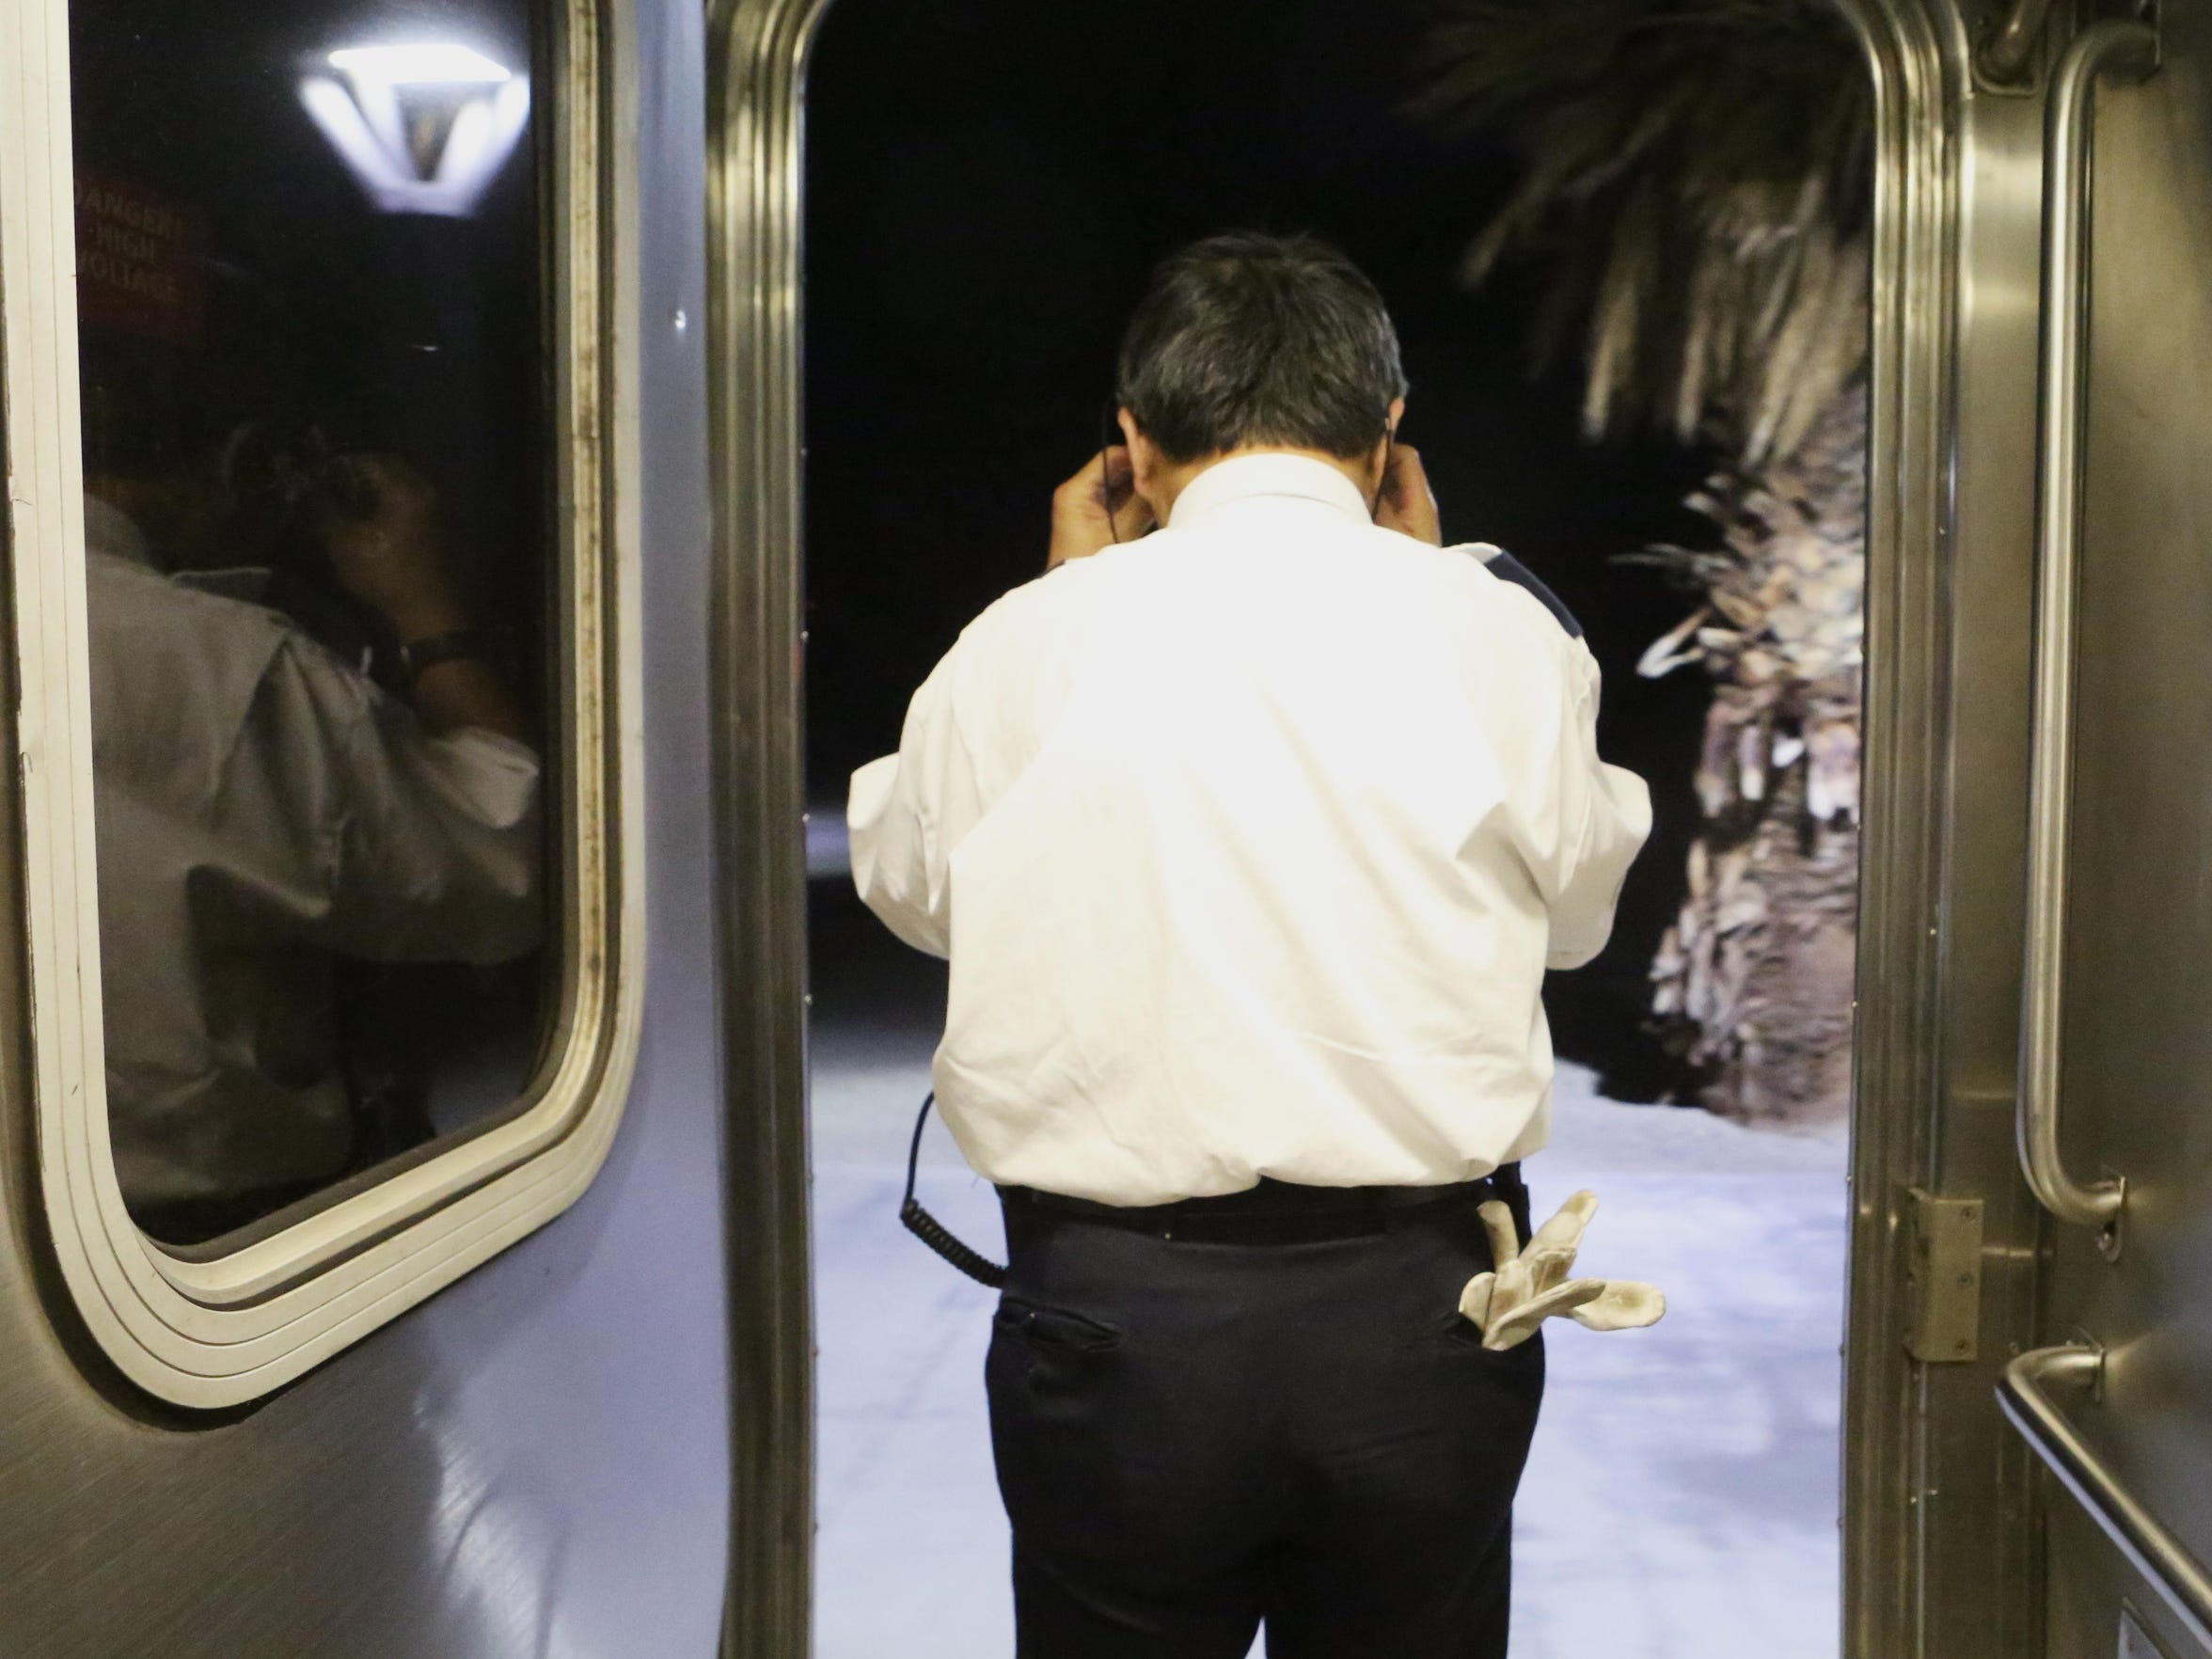 A train attendee adjusts his glasses as the Amtrak